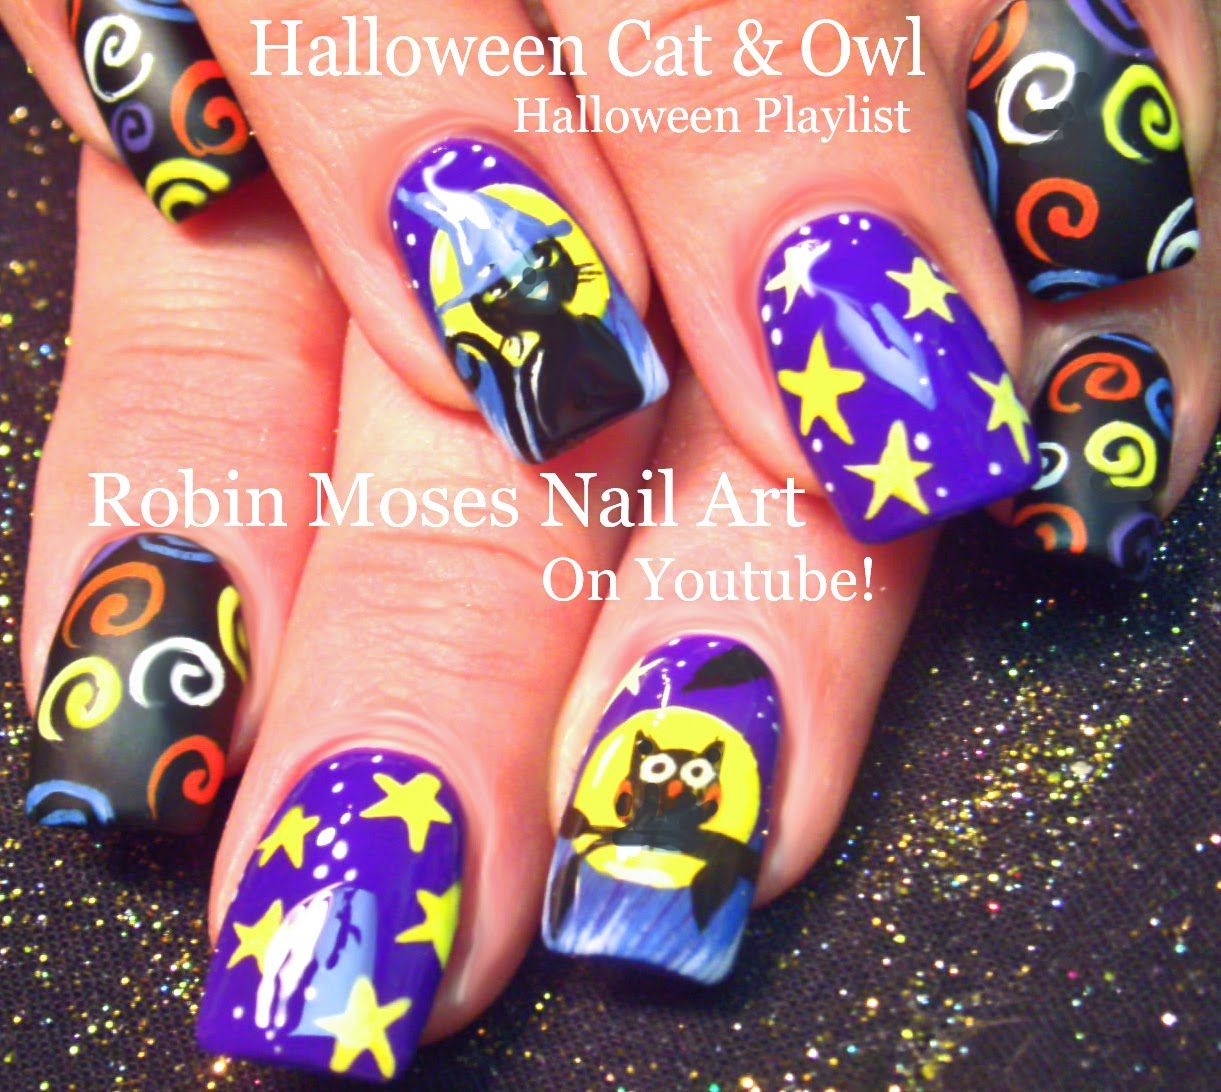 Halloween Nail Art! Spooky Nails! Owls Black Cat Nail Design ...